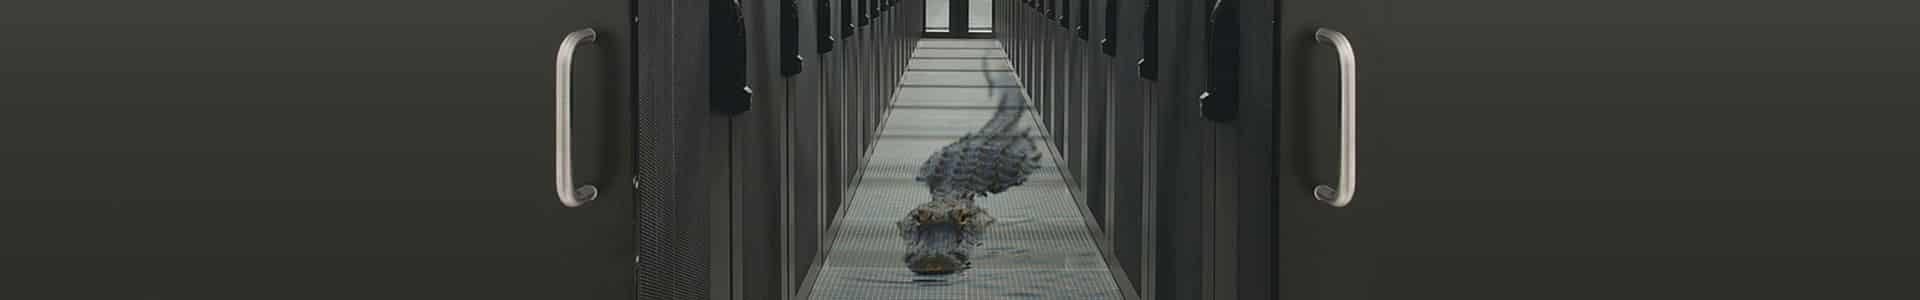 Image of alligator swimming between servers